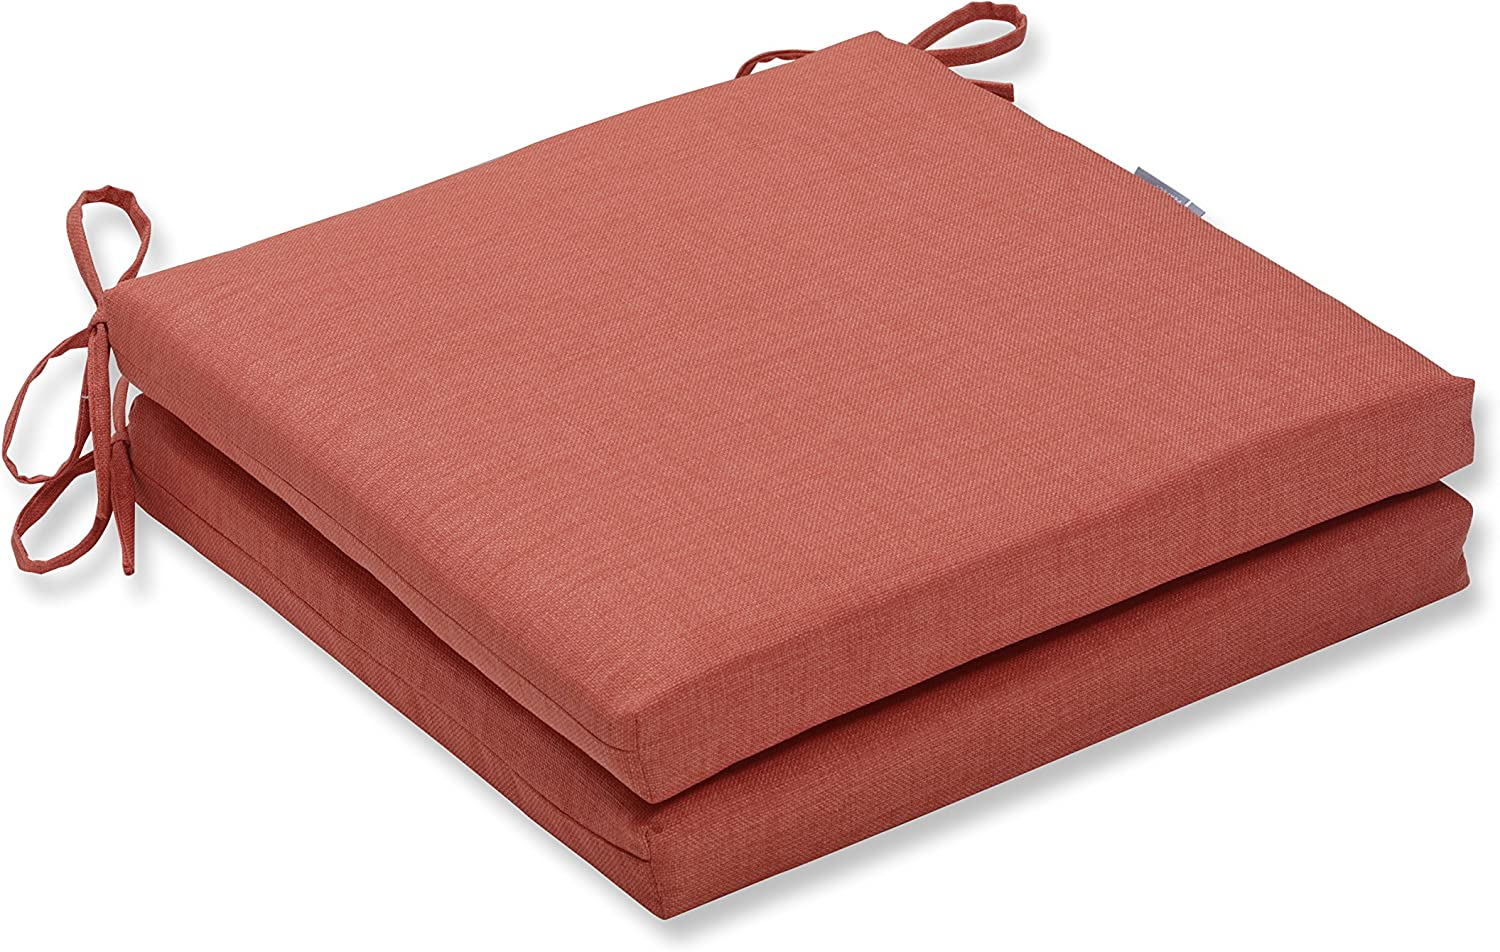 Pillow Perfect Outdoor Indoor Rave Coral Squared Corners Seat Cushion (Set of 2), 20 in. L X 20 in. W X 3 in. D